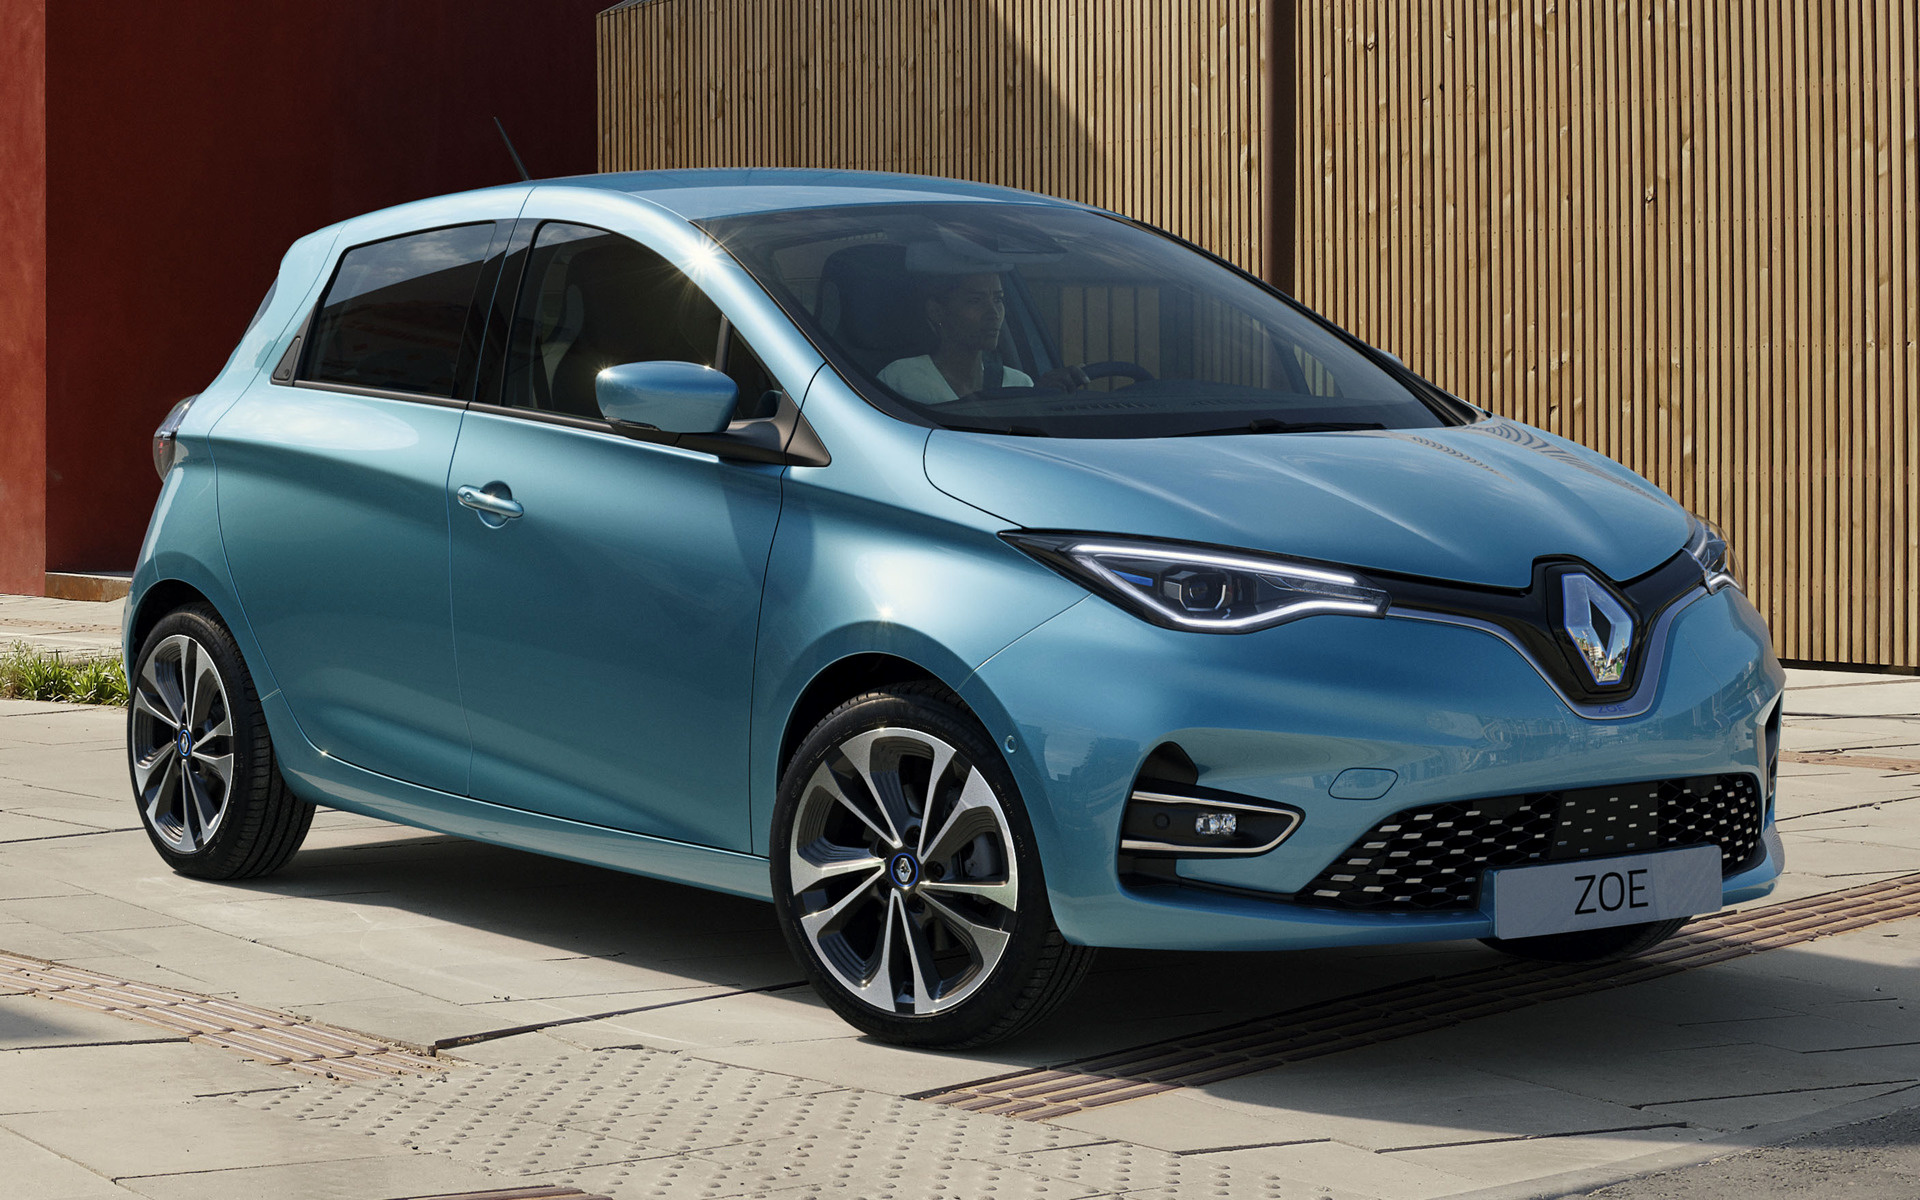 2019 Renault Zoe - Wallpapers and HD Images | Car Pixel